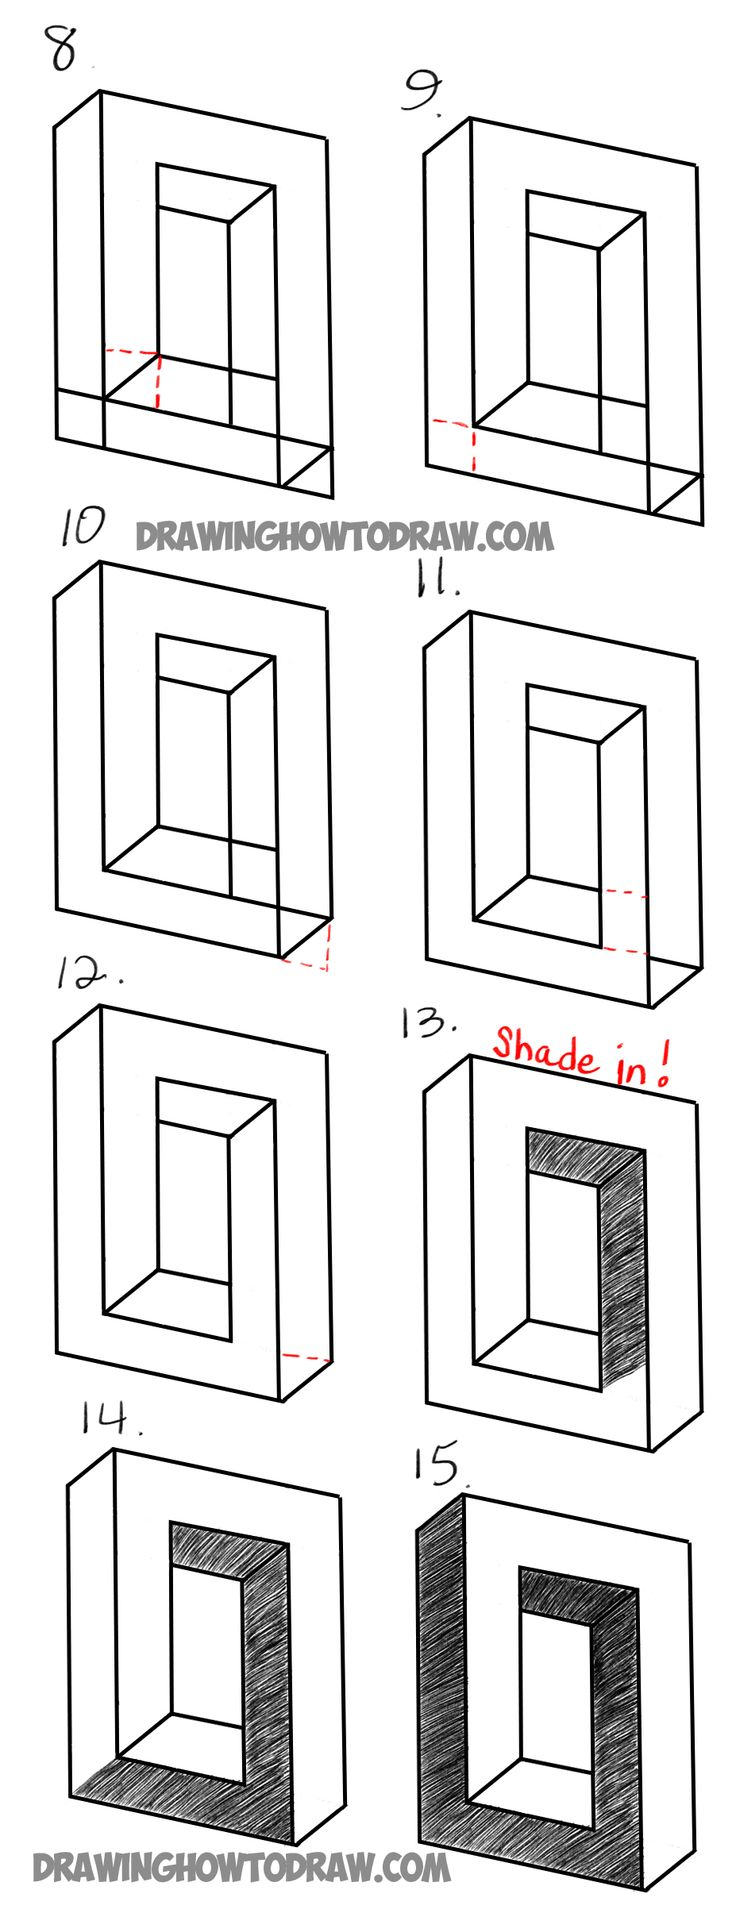 how to draw impossible stairs step by step